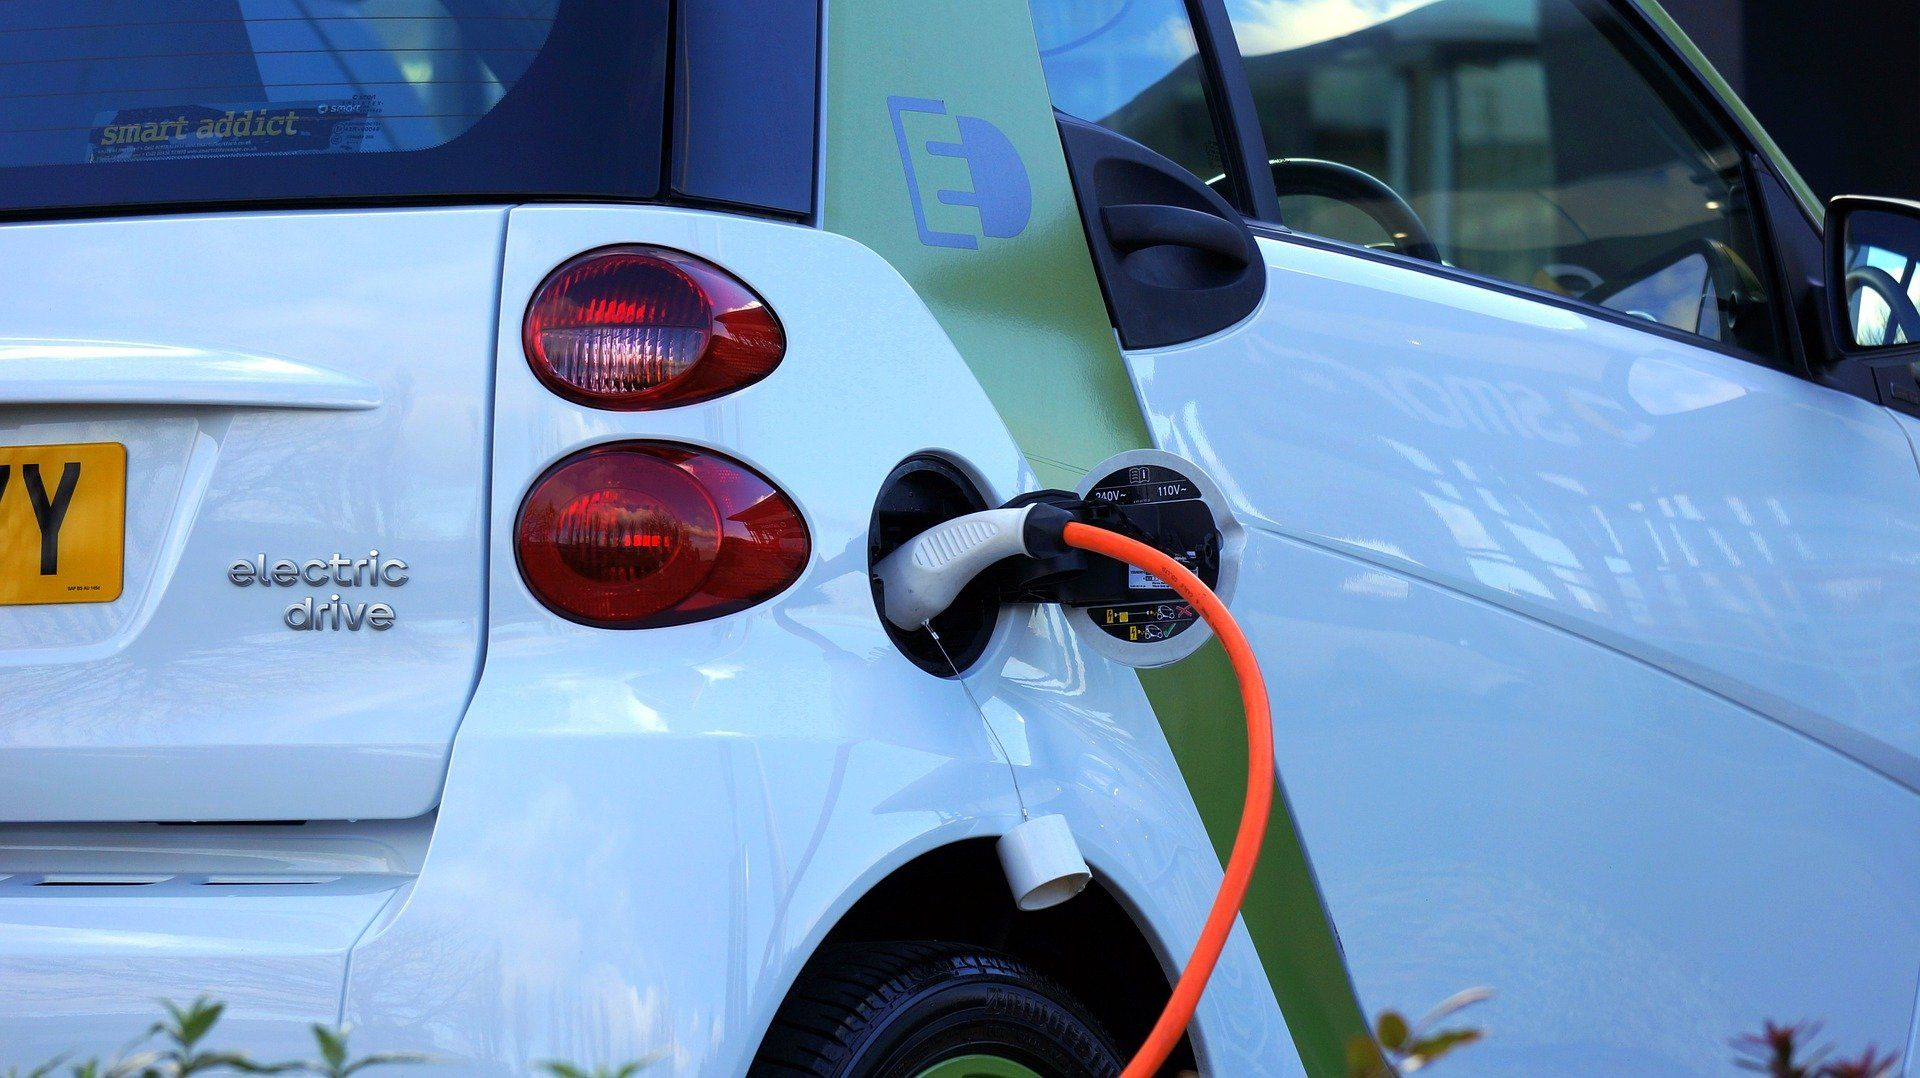 Electric Cars Aren't As Eco-Friendly As You Think. Here's Why.